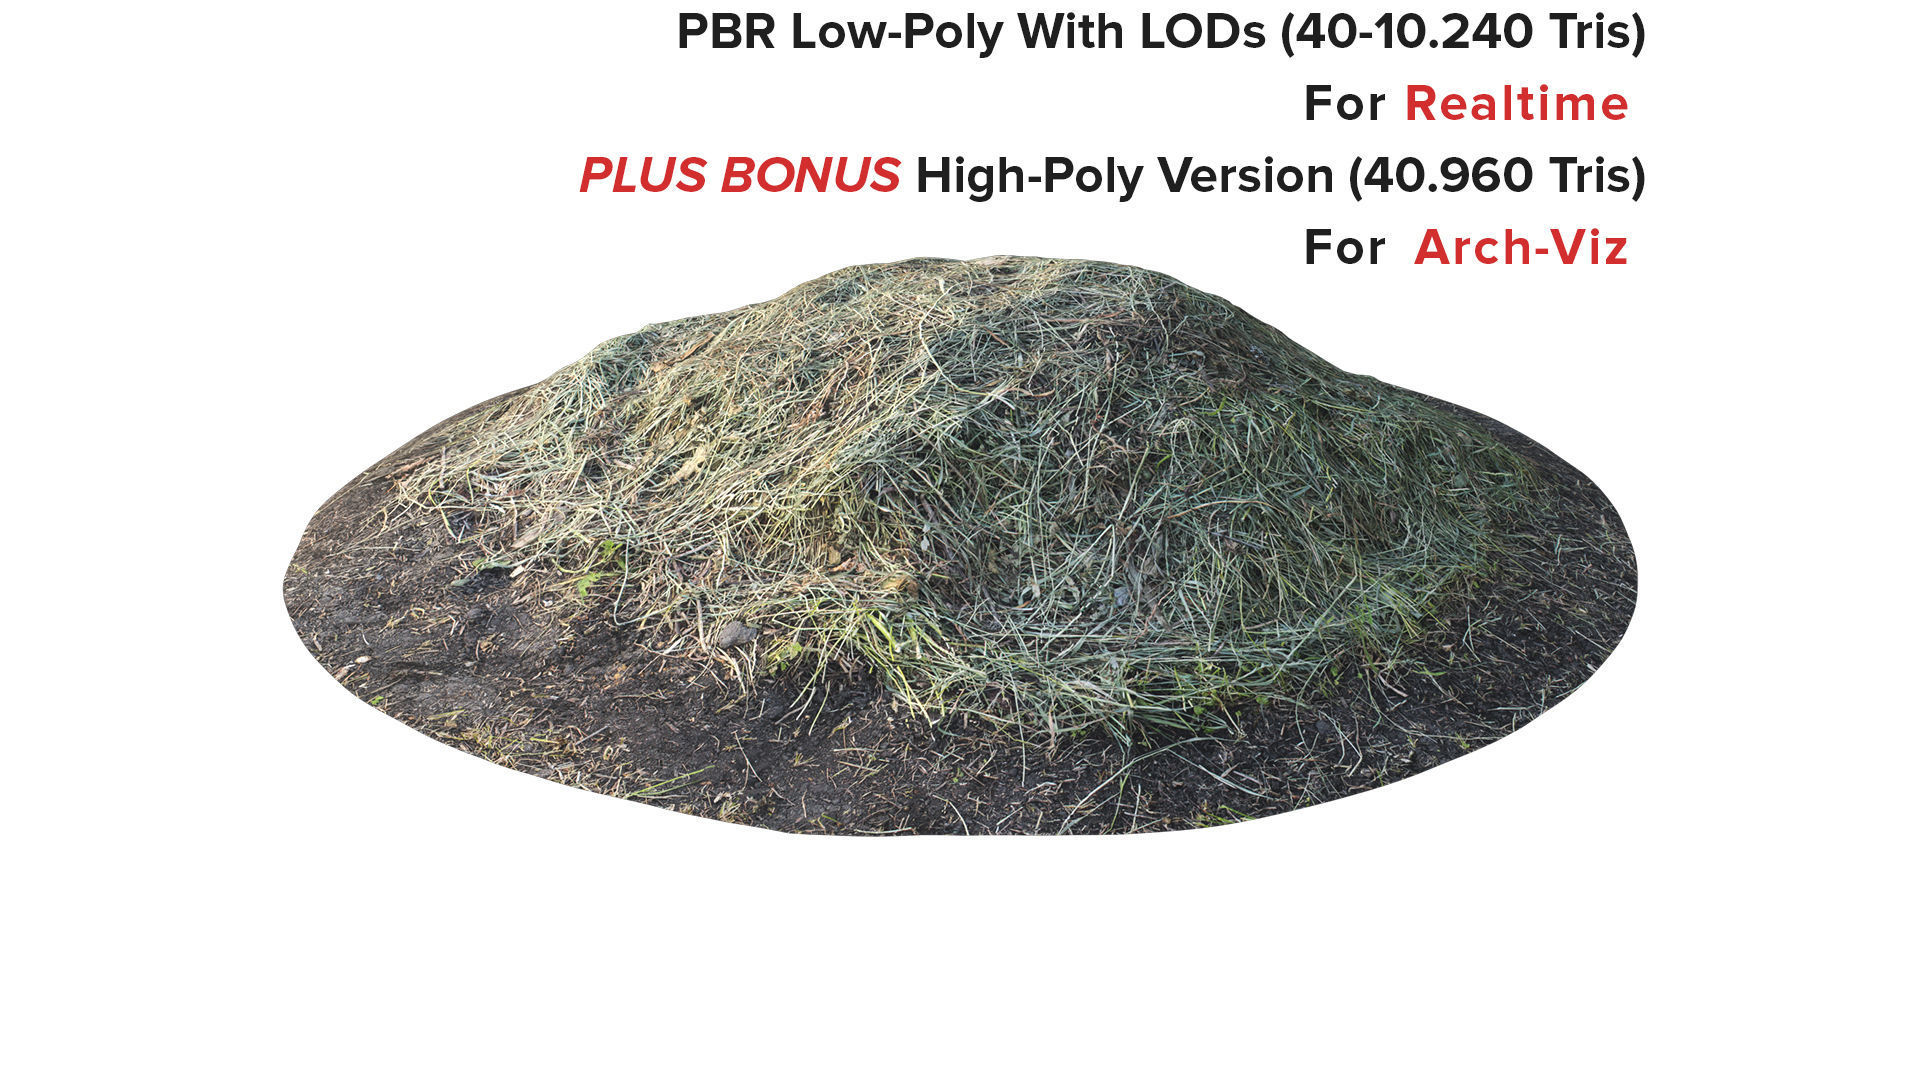 Props For Exterior - Mowed Grass - Scanned Pile Of Hay